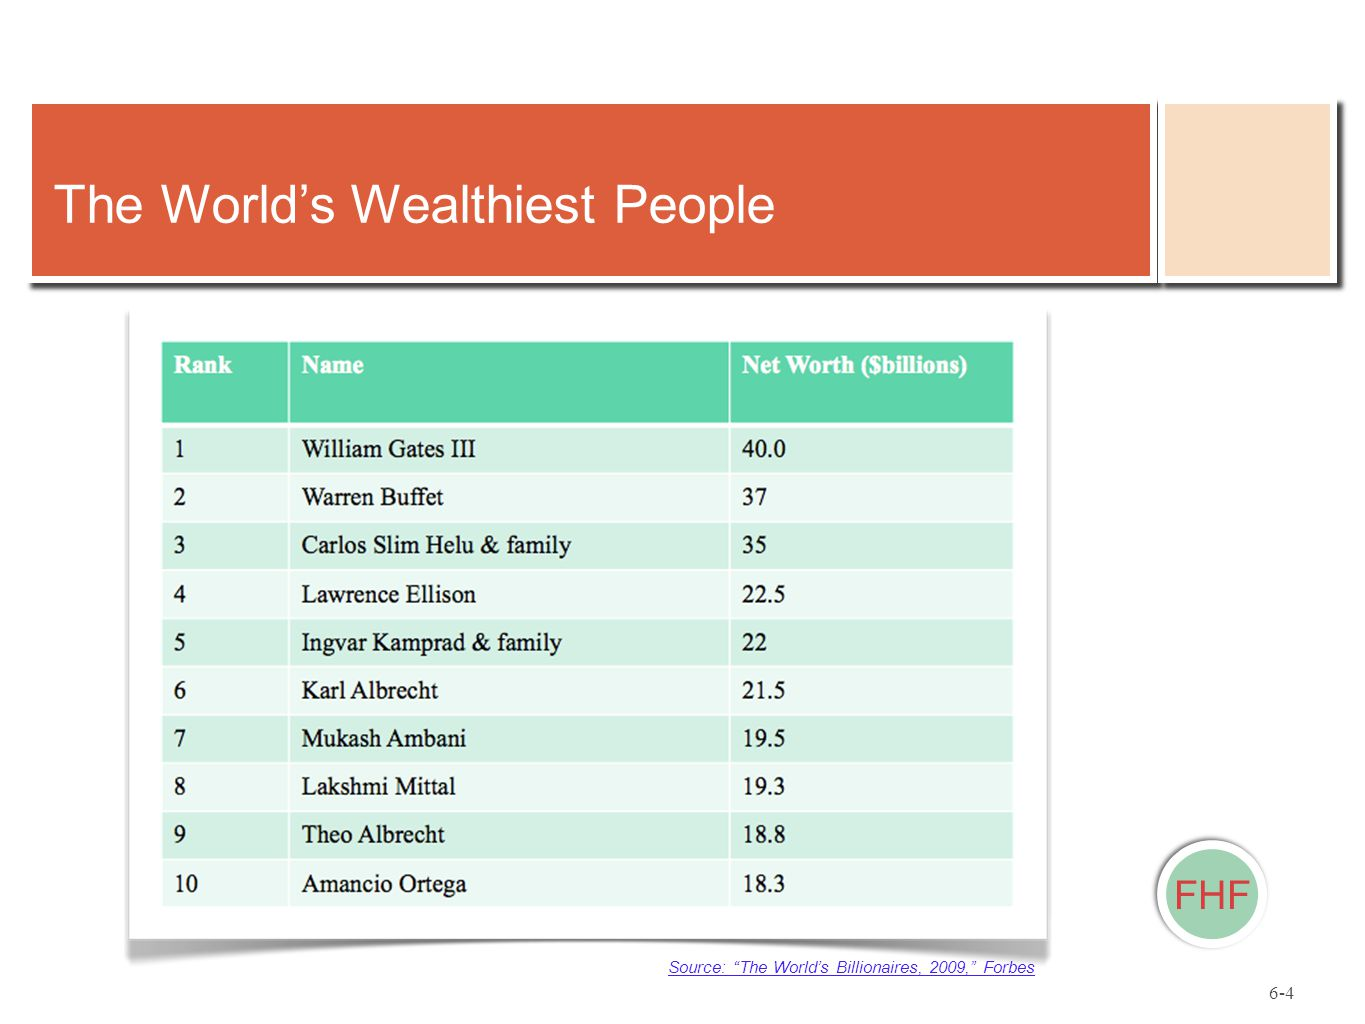 FHF The World's Wealthiest People Source: The World's Billionaires, 2009, Forbes 6-4